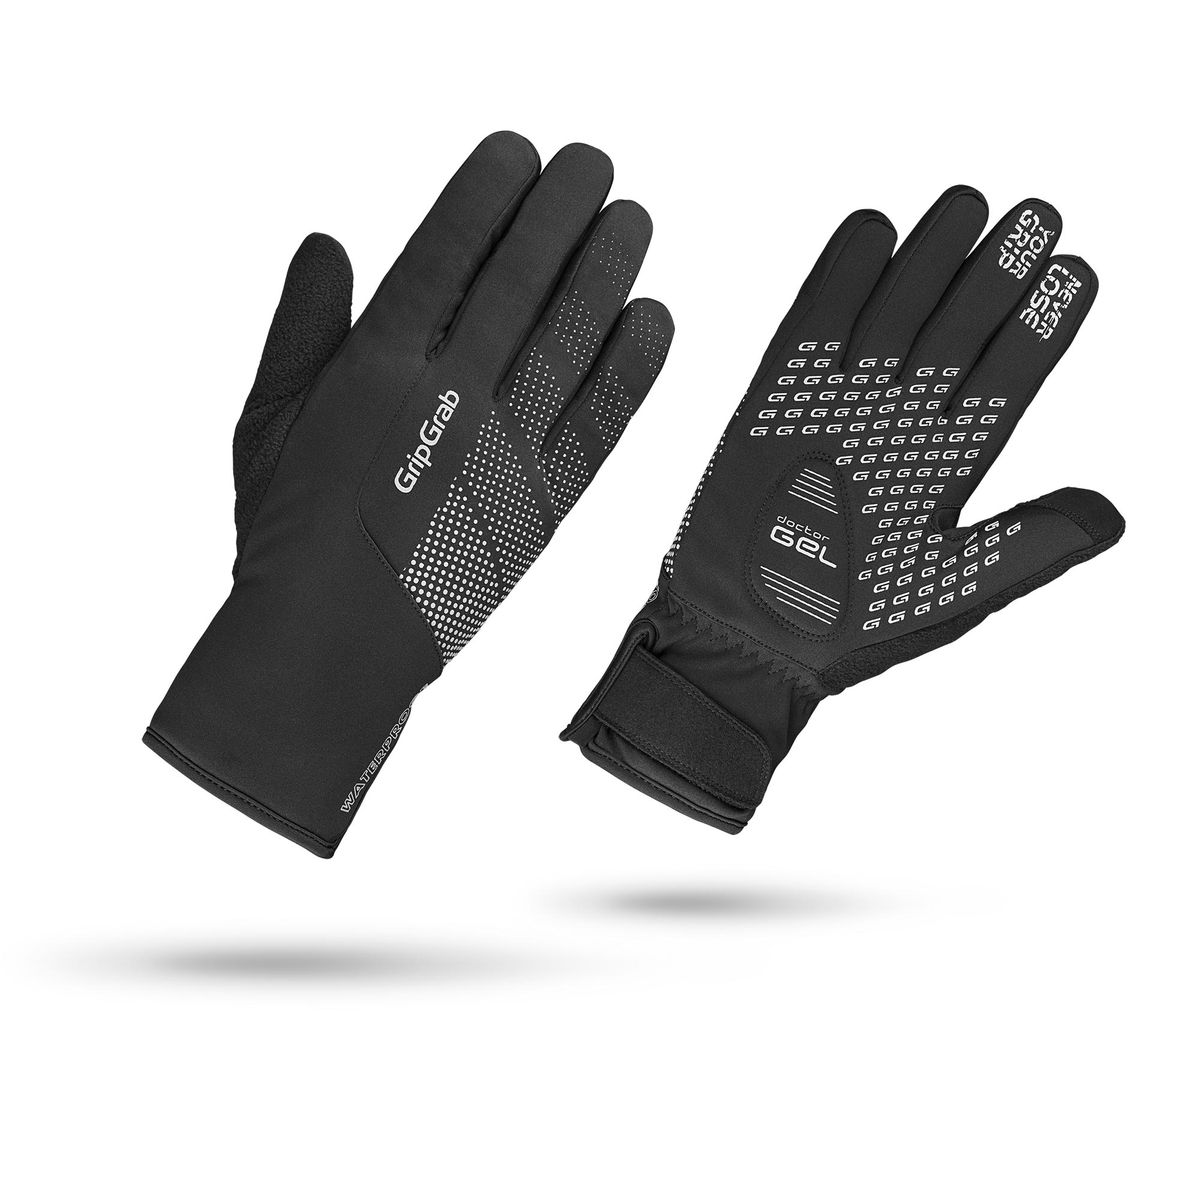 RIDE WATERPROOF WINTER gloves